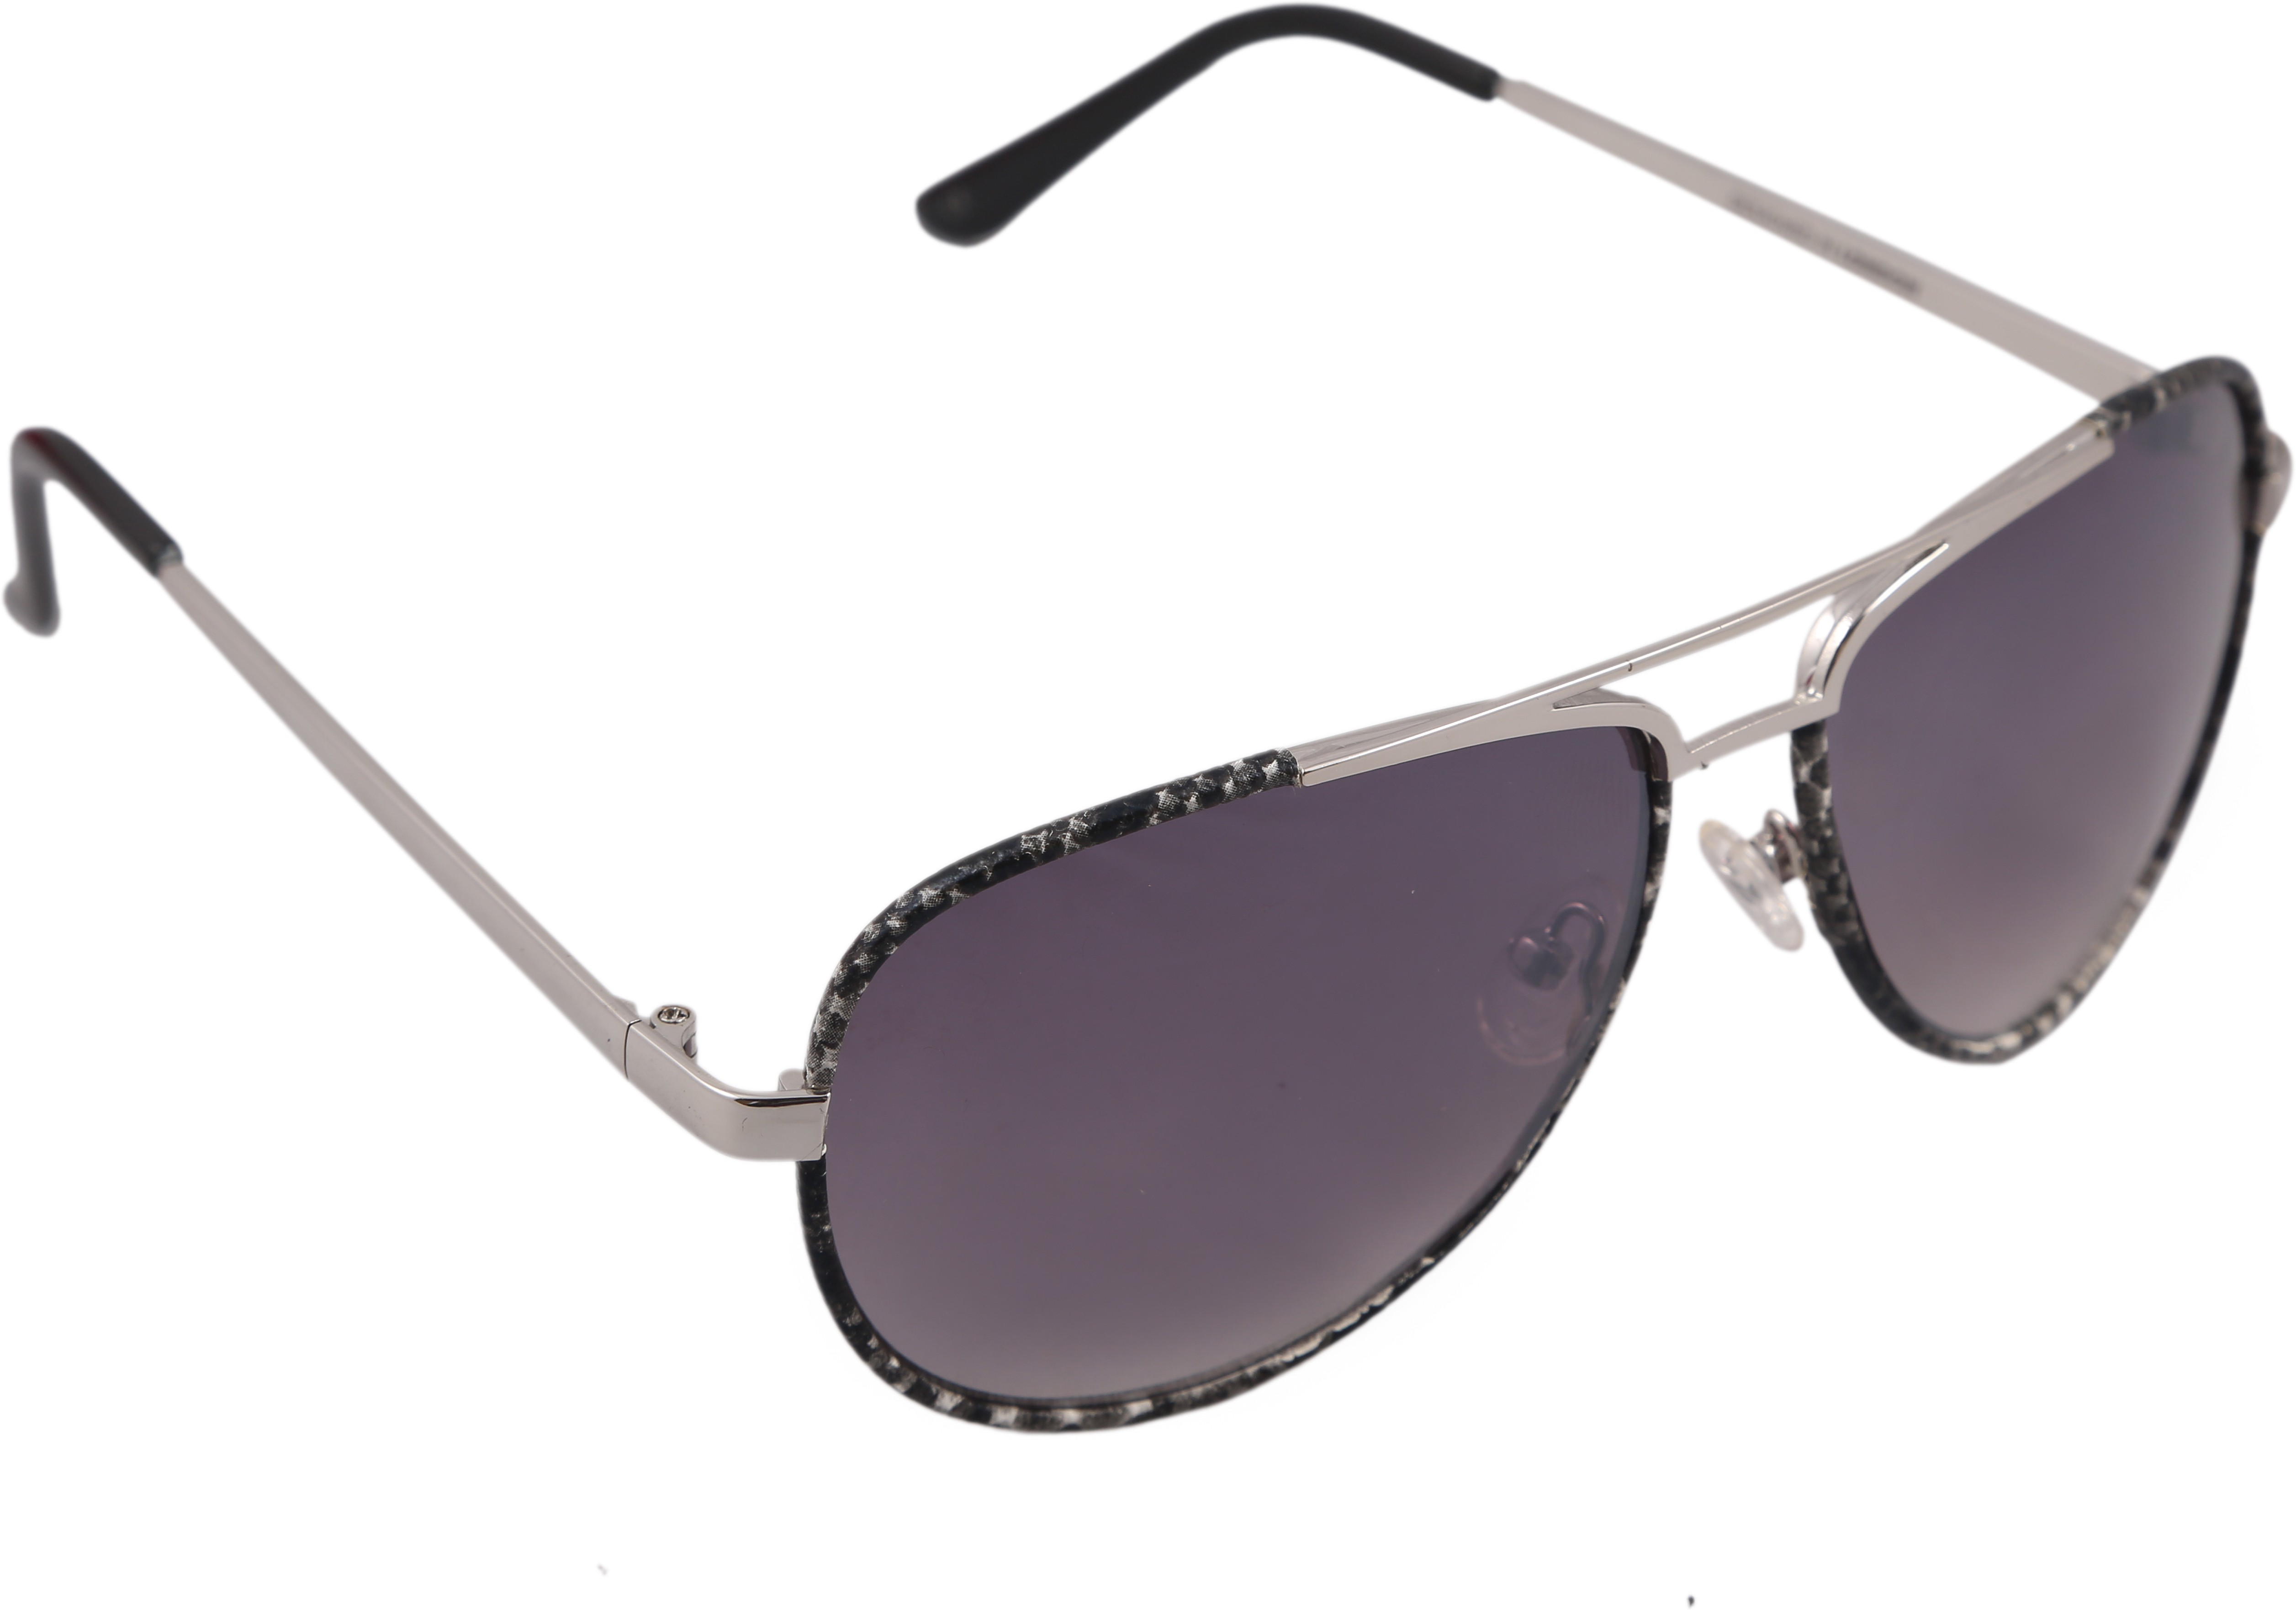 Deals - Delhi - Abster, Carrera... <br> Over Sized Womens Sunglasses<br> Category - sunglasses<br> Business - Flipkart.com